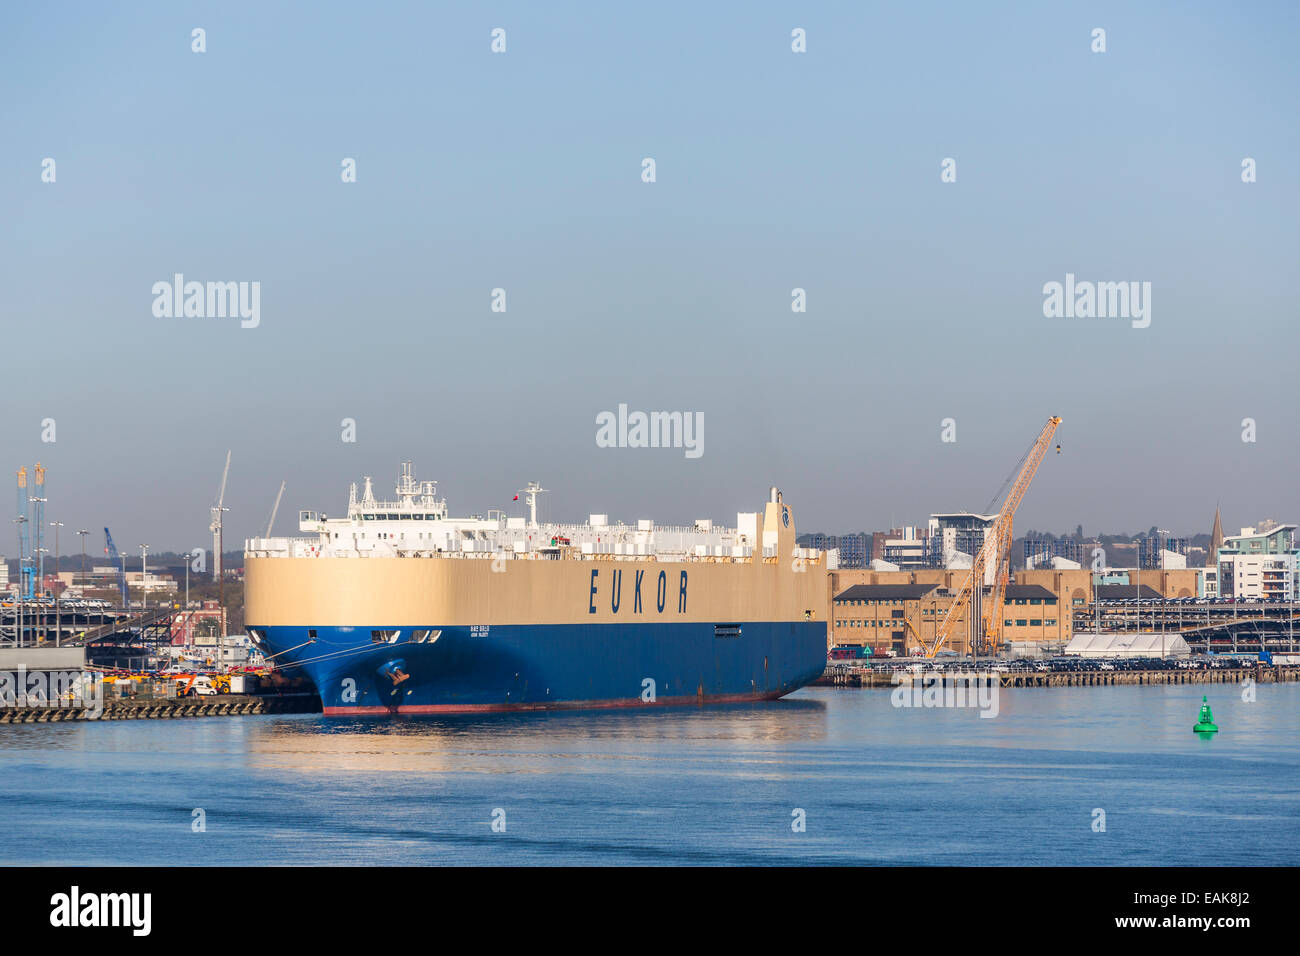 Huge 'Eukor' Pure Car and Truck Carrier 'Asian Majesty' berthed at Southampton Docks, Port of Southampton, - Stock Image